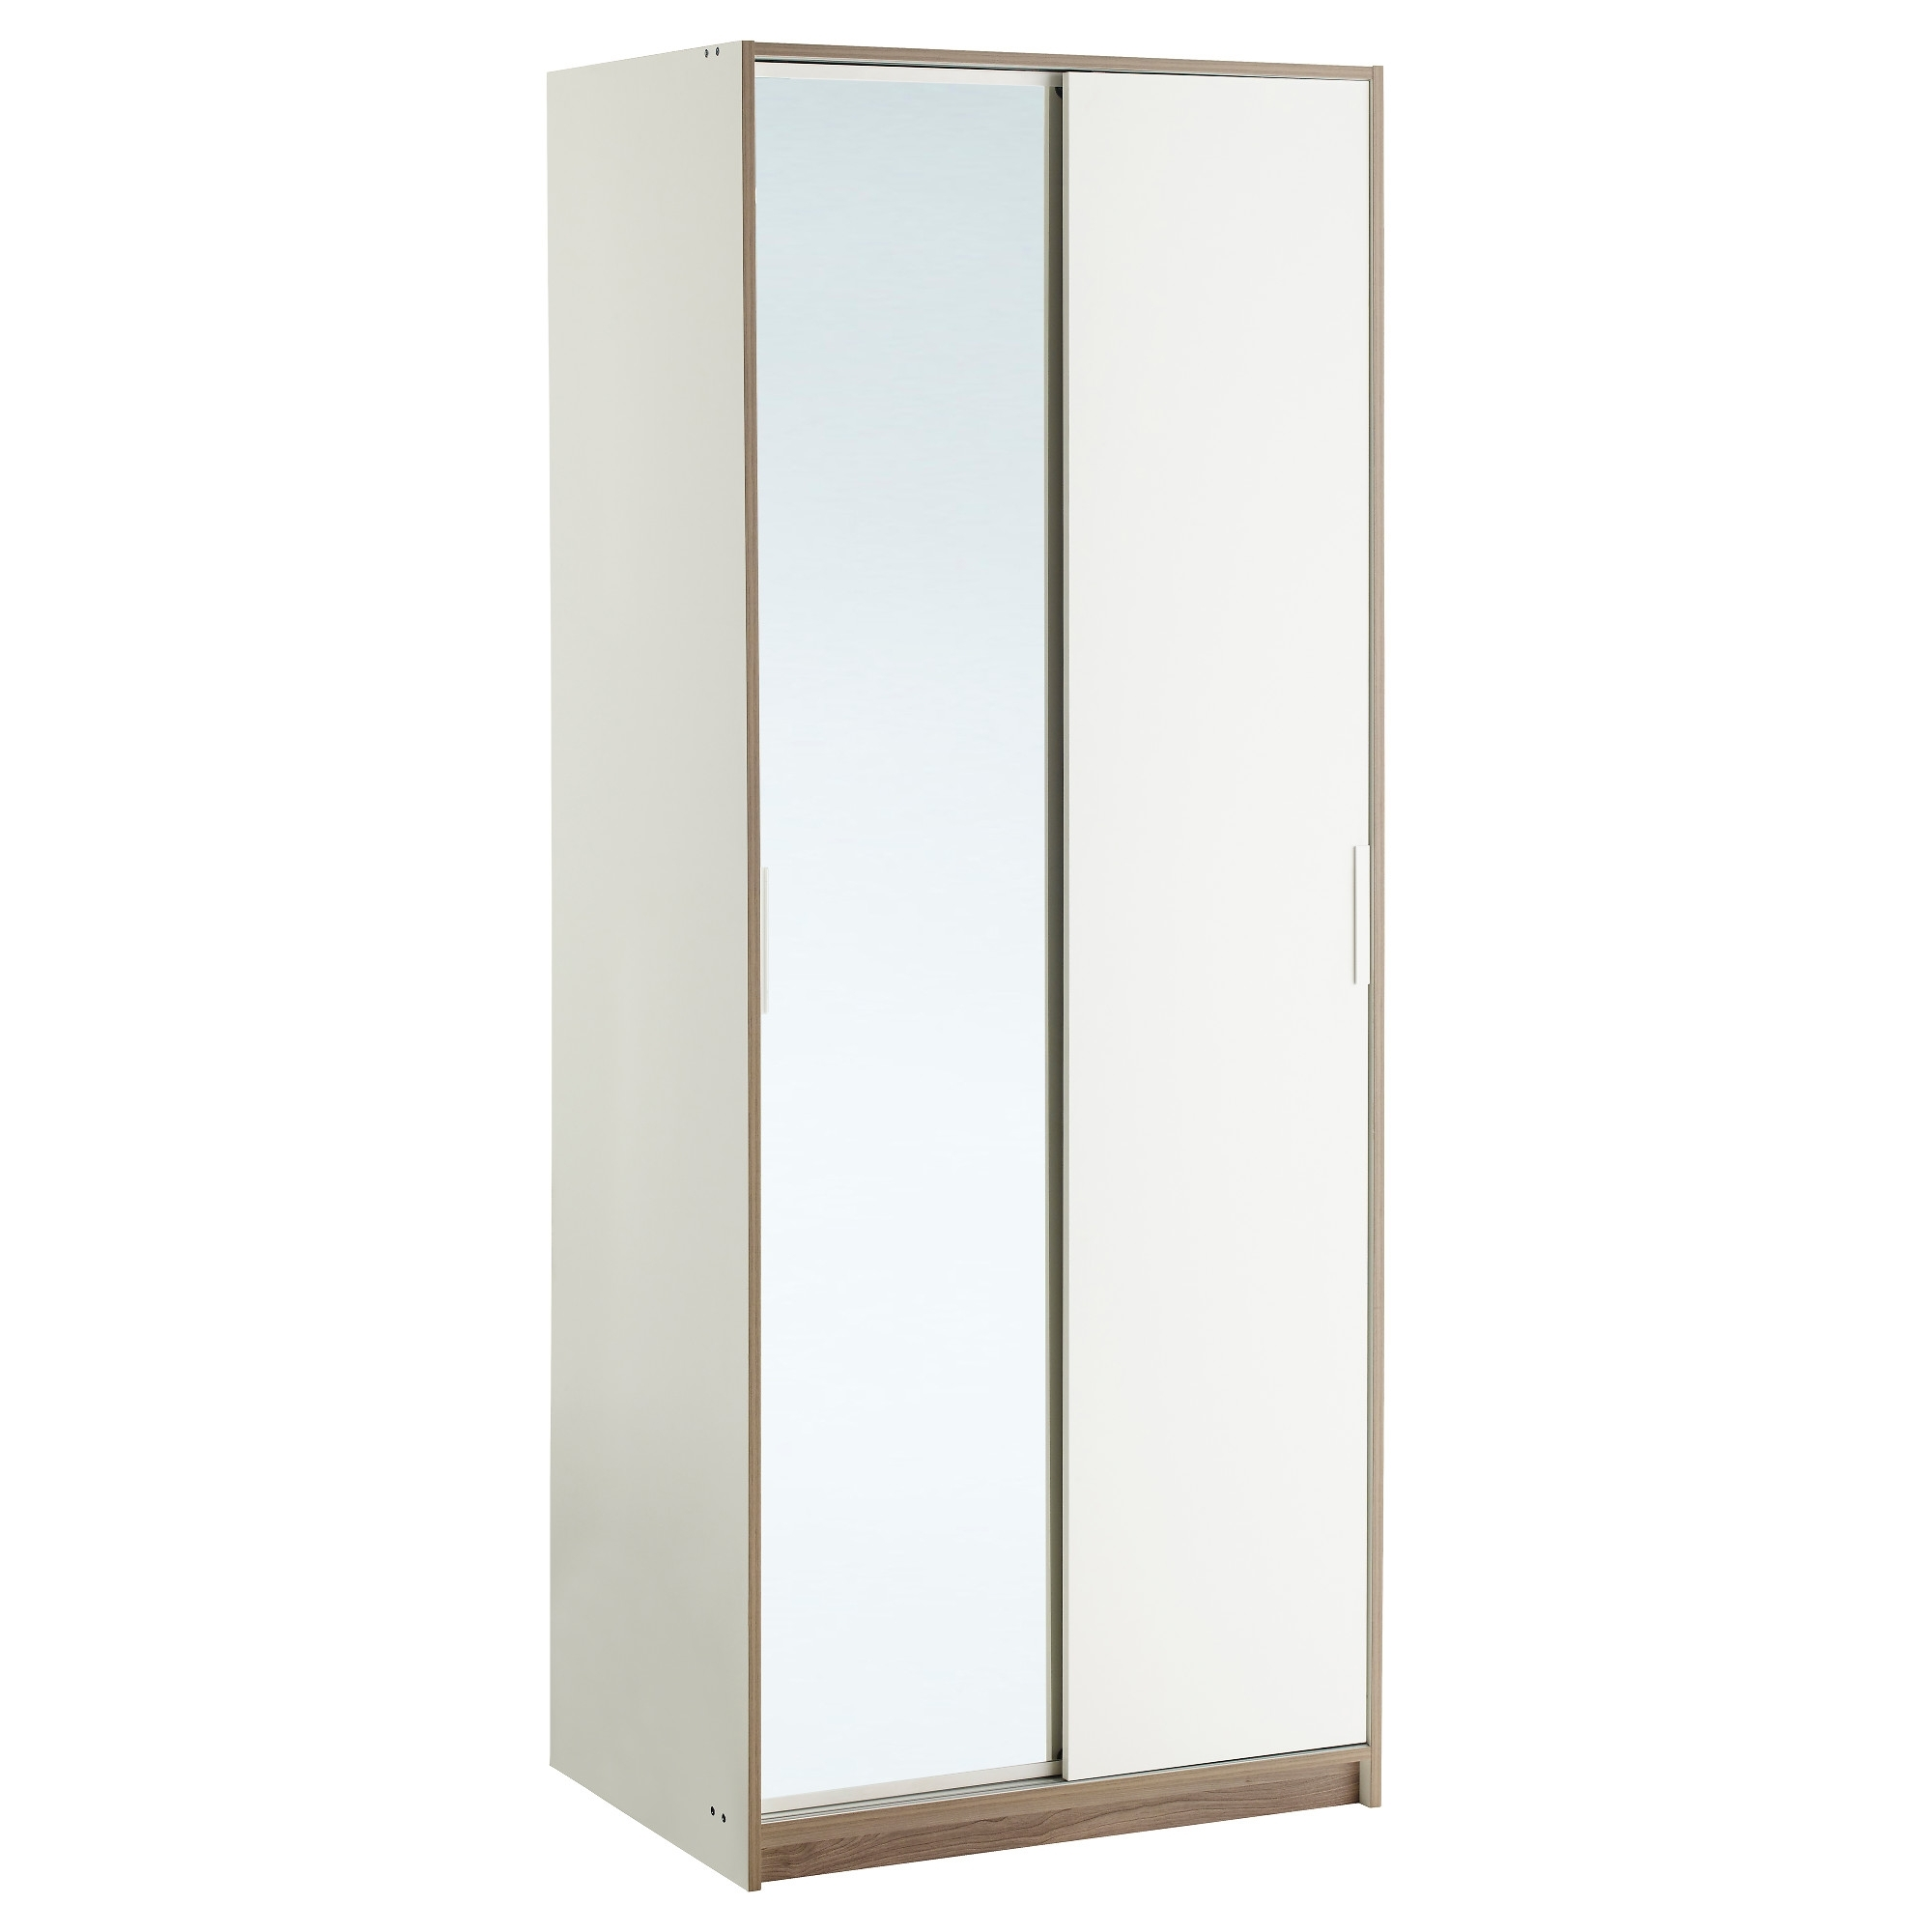 Double Mirrored Wardrobes Intended For Well Known Trysil Wardrobe White/mirror Glass 79X61X202 Cm – Ikea (View 5 of 15)